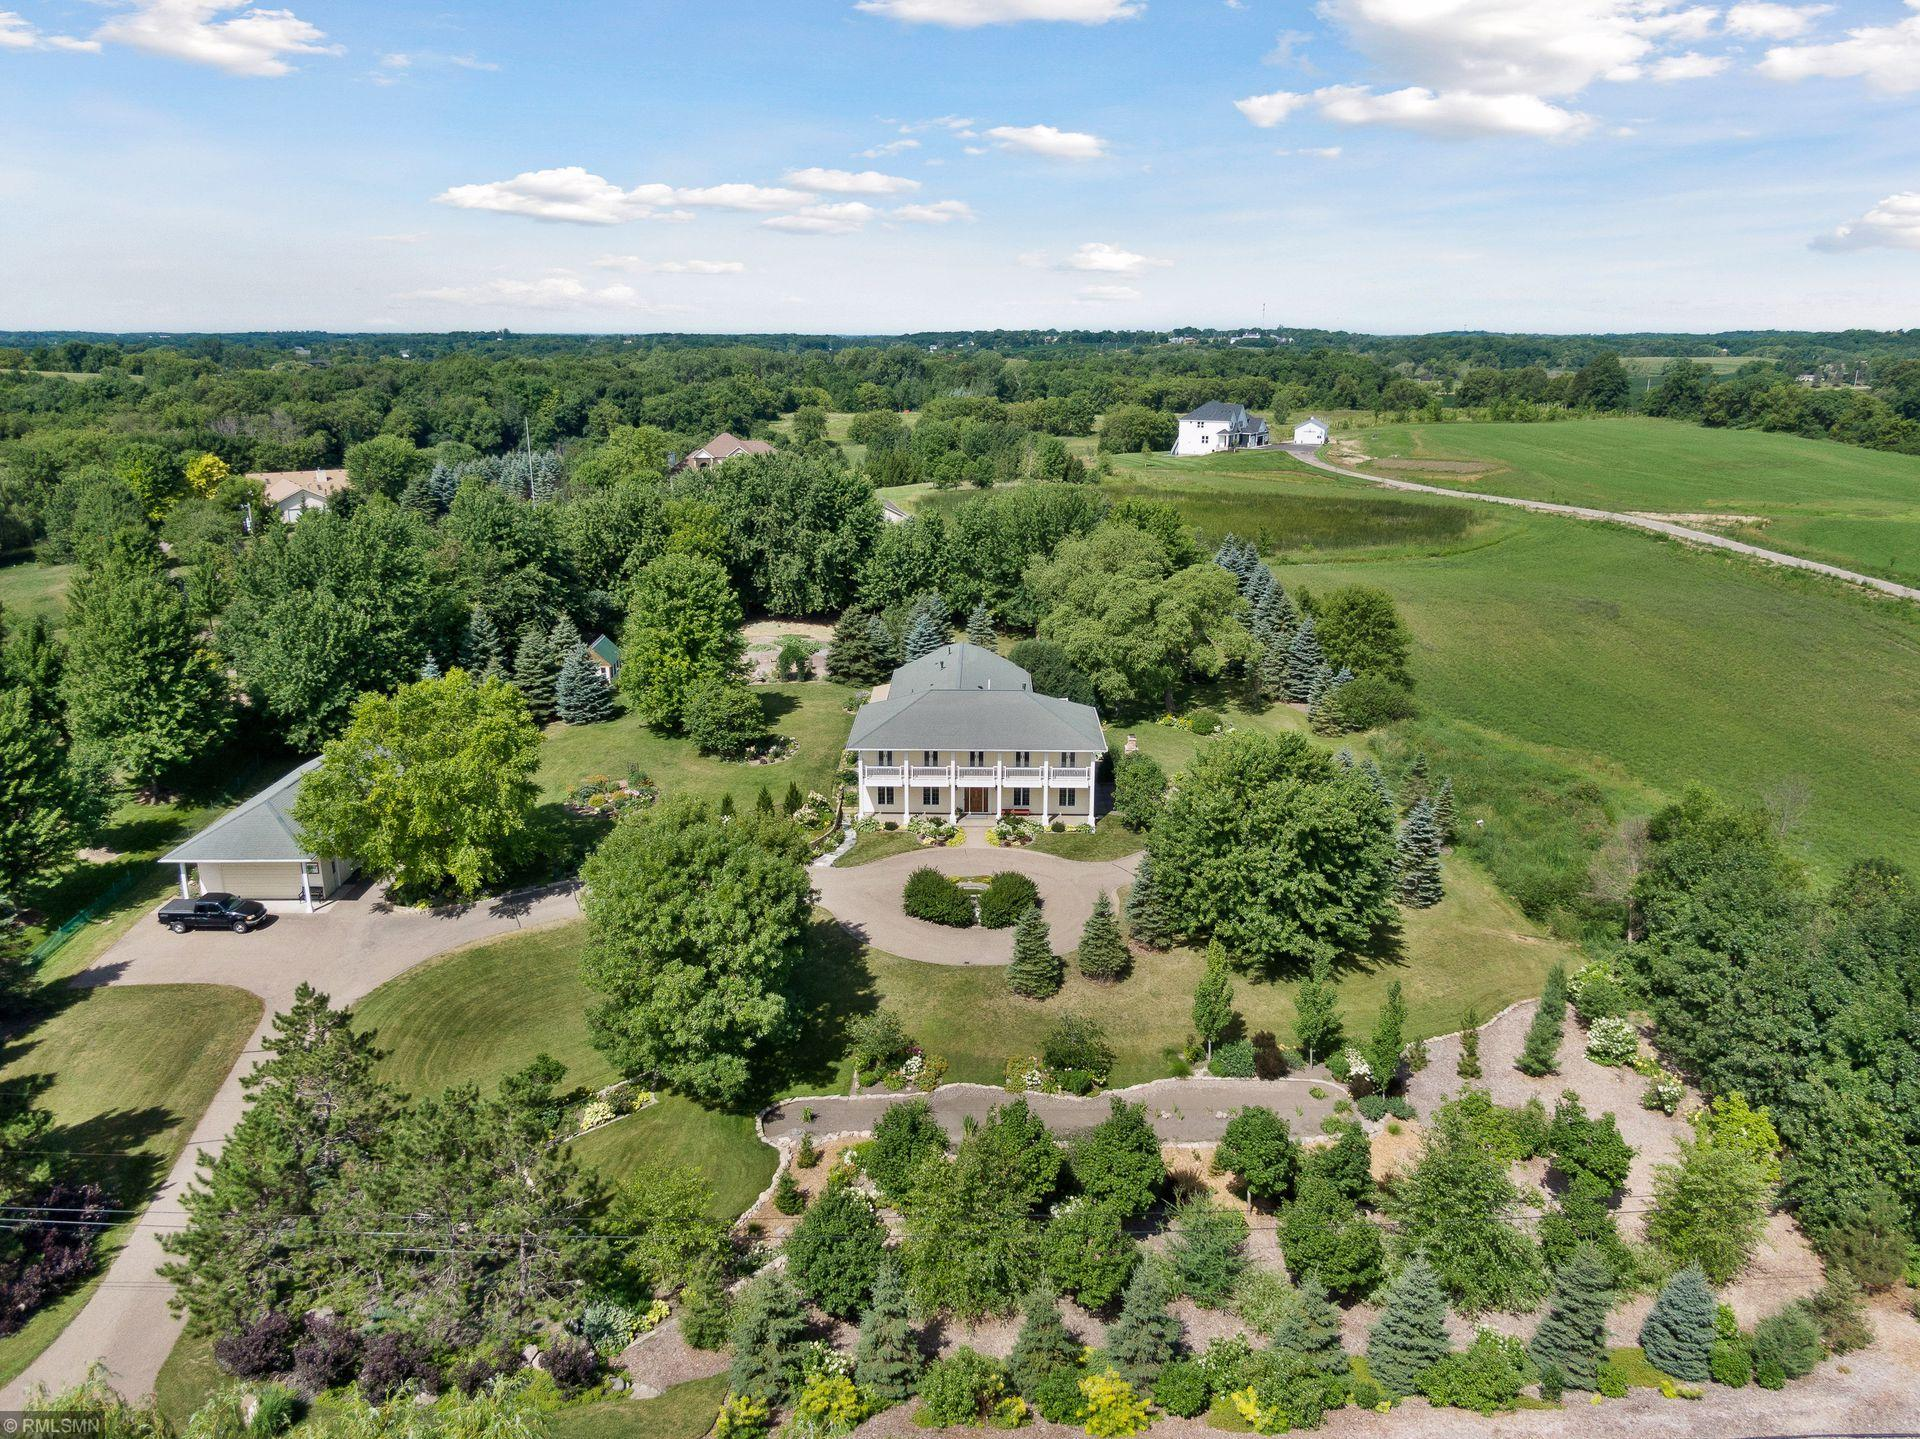 6975 Pioneer Trail Property Photo - Greenfield, MN real estate listing